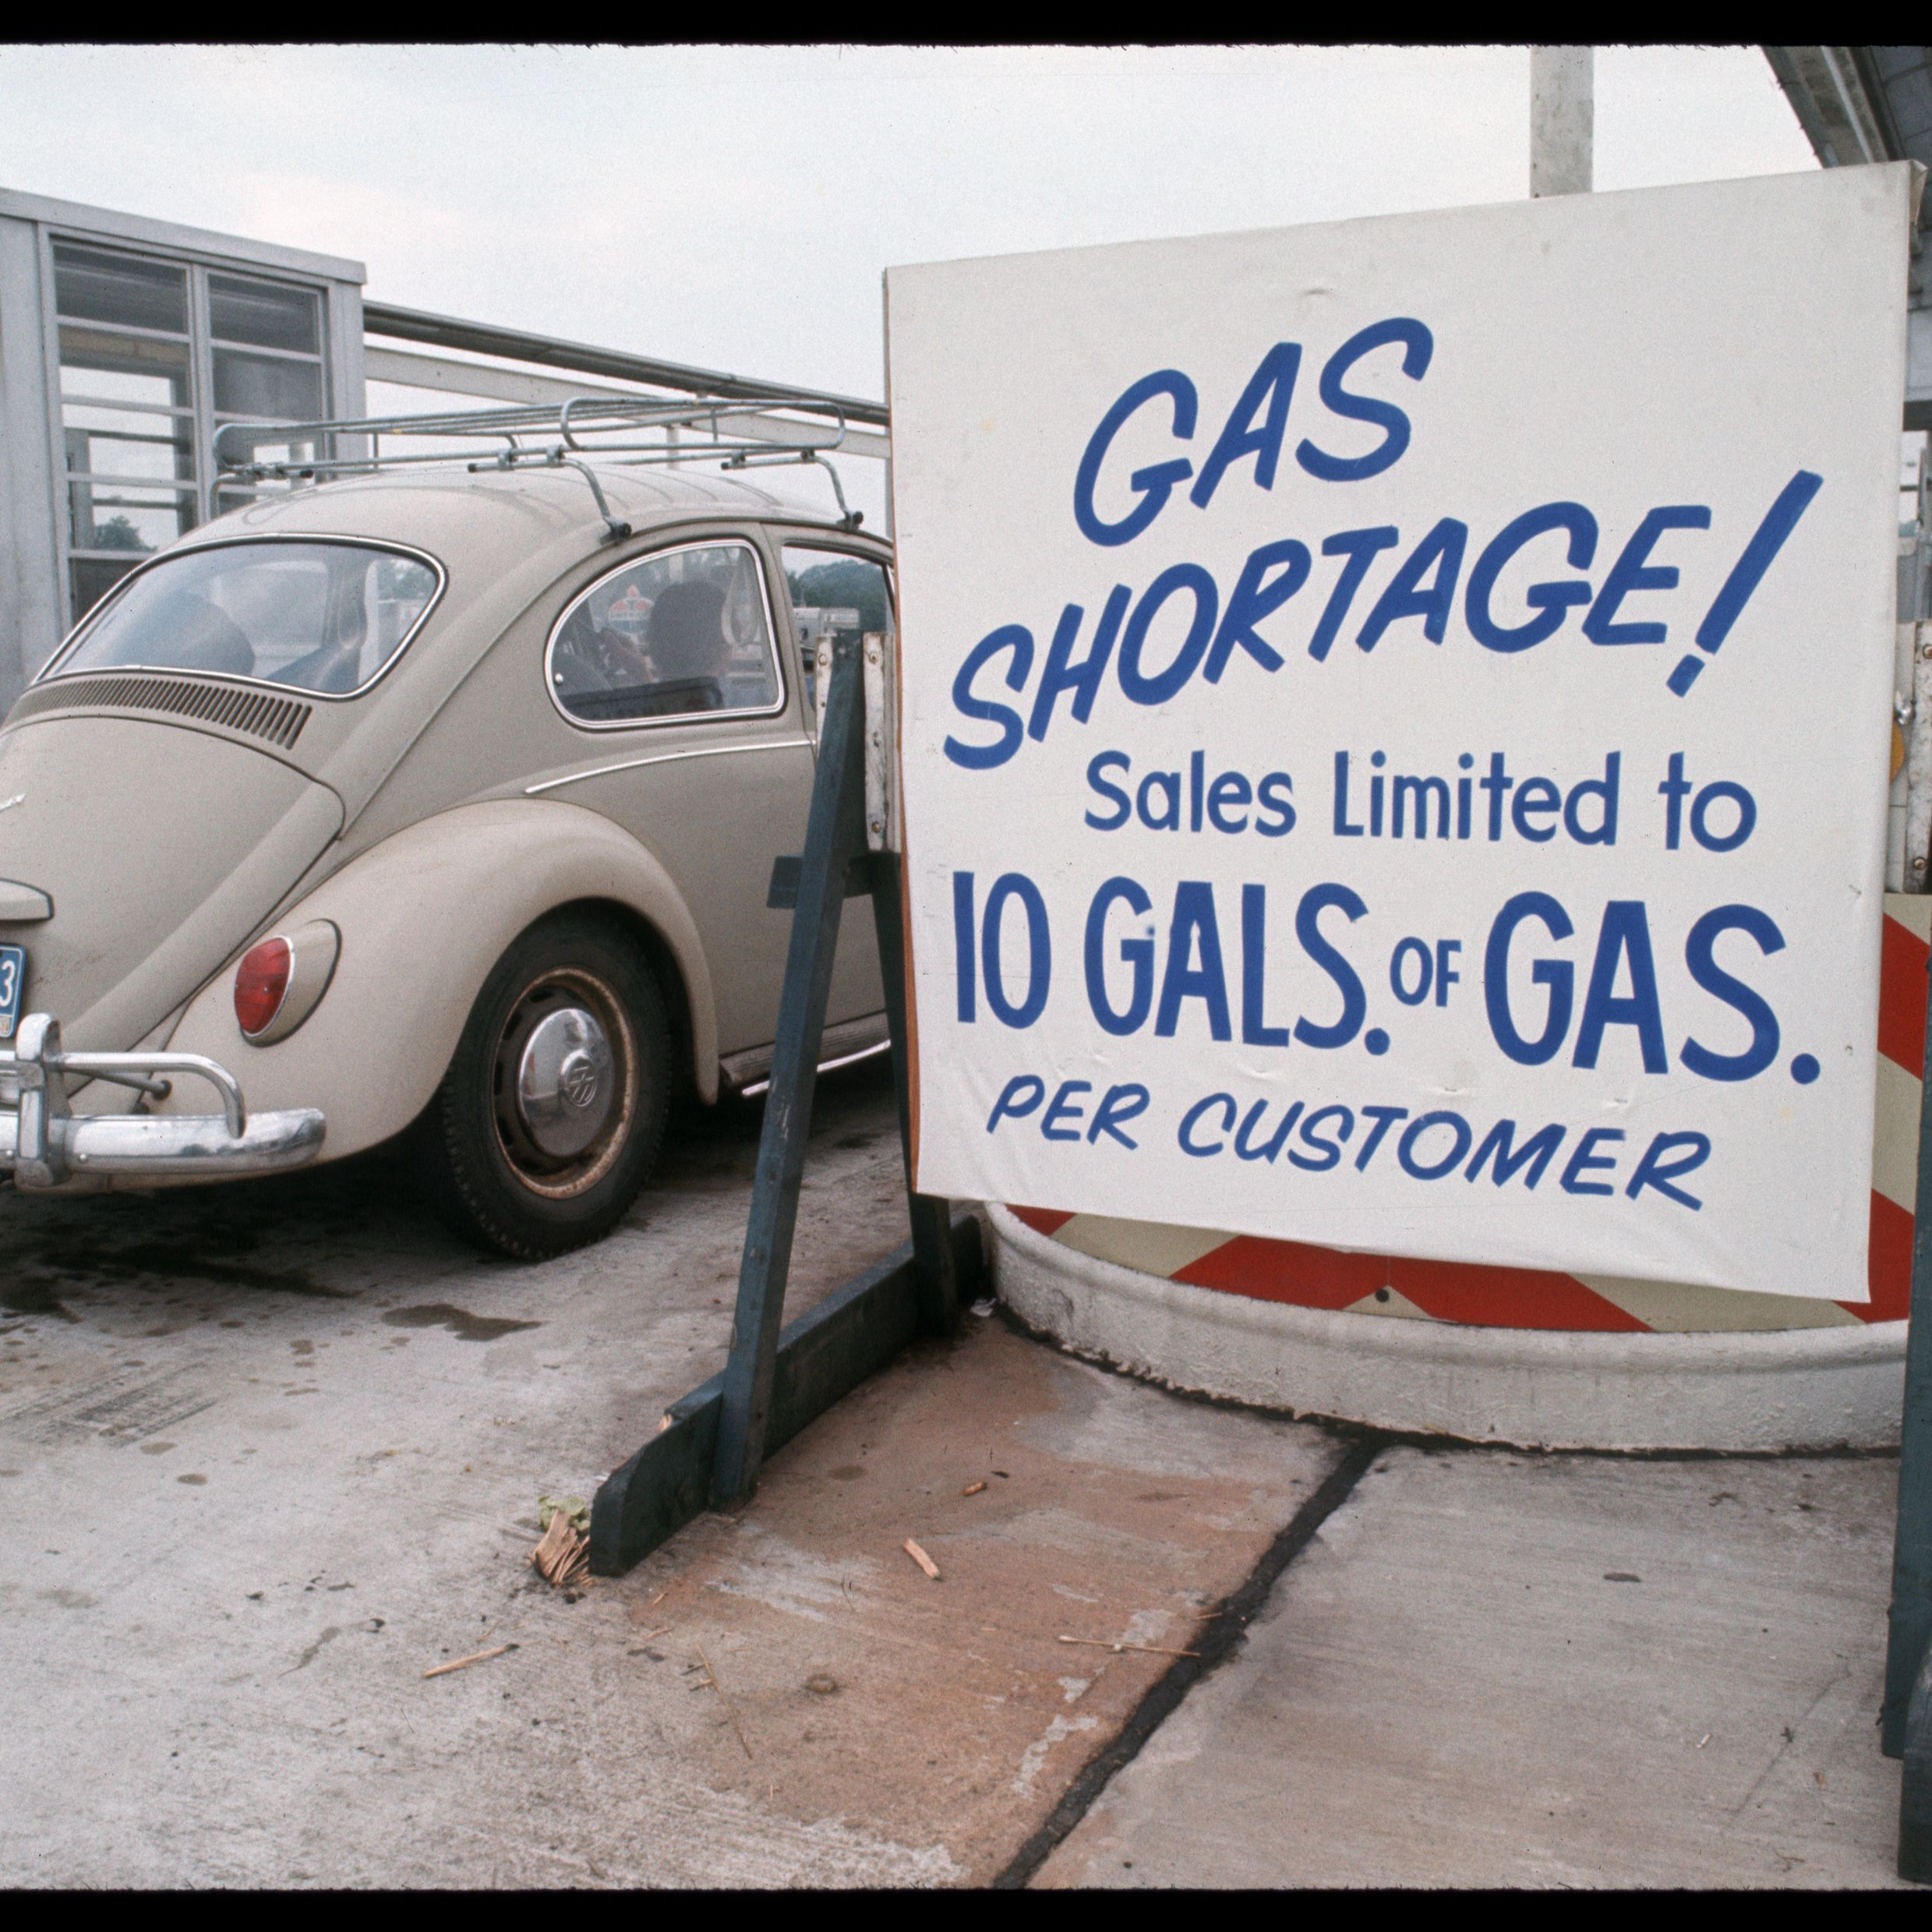 OPEC Oil Embargo: Definition, Cause, Effects of 1973 Crisis